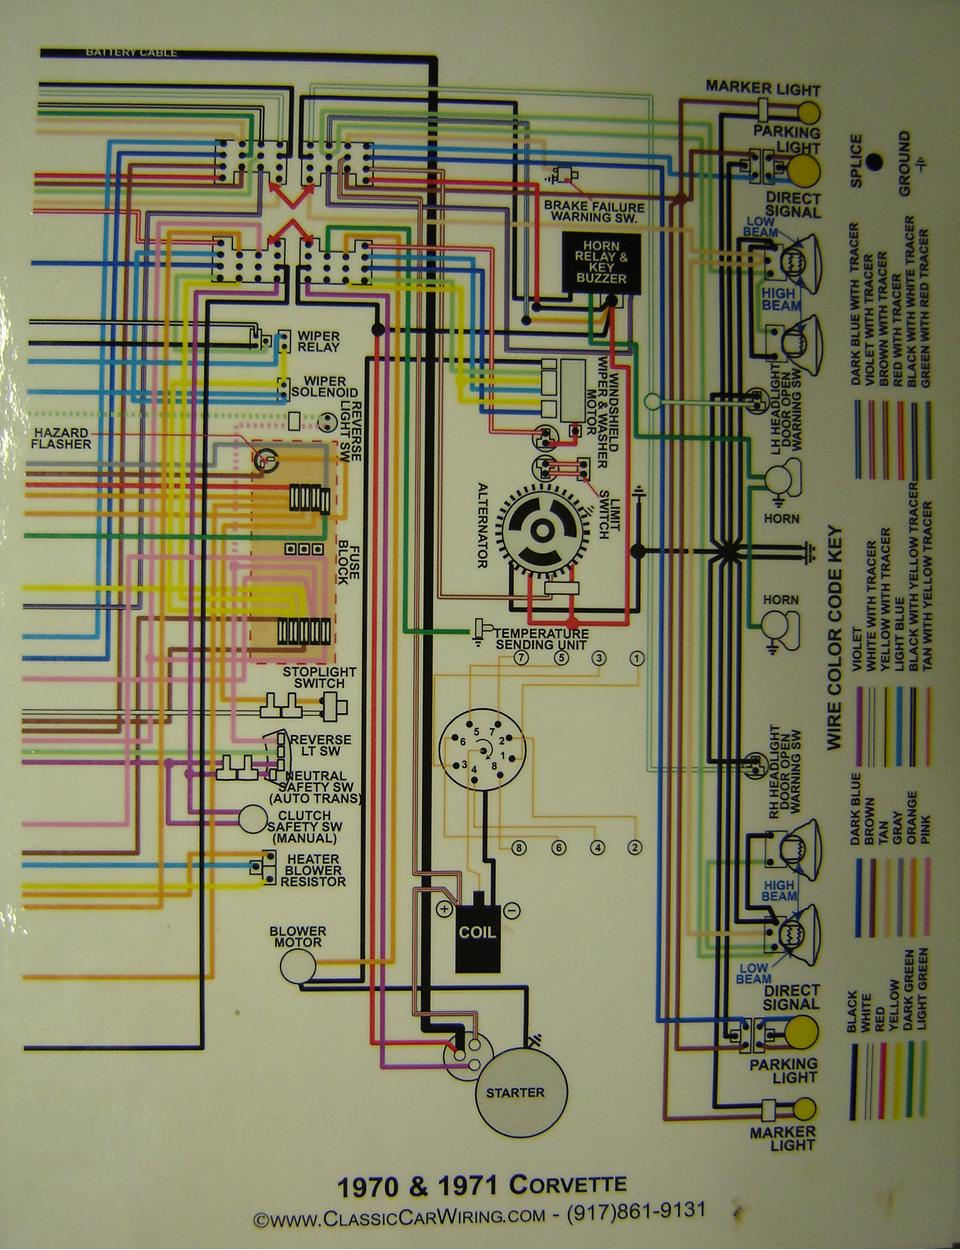 1970 71 corvette color wiring diagram B chevy diagrams 1967 chevelle wiring diagram pdf at reclaimingppi.co